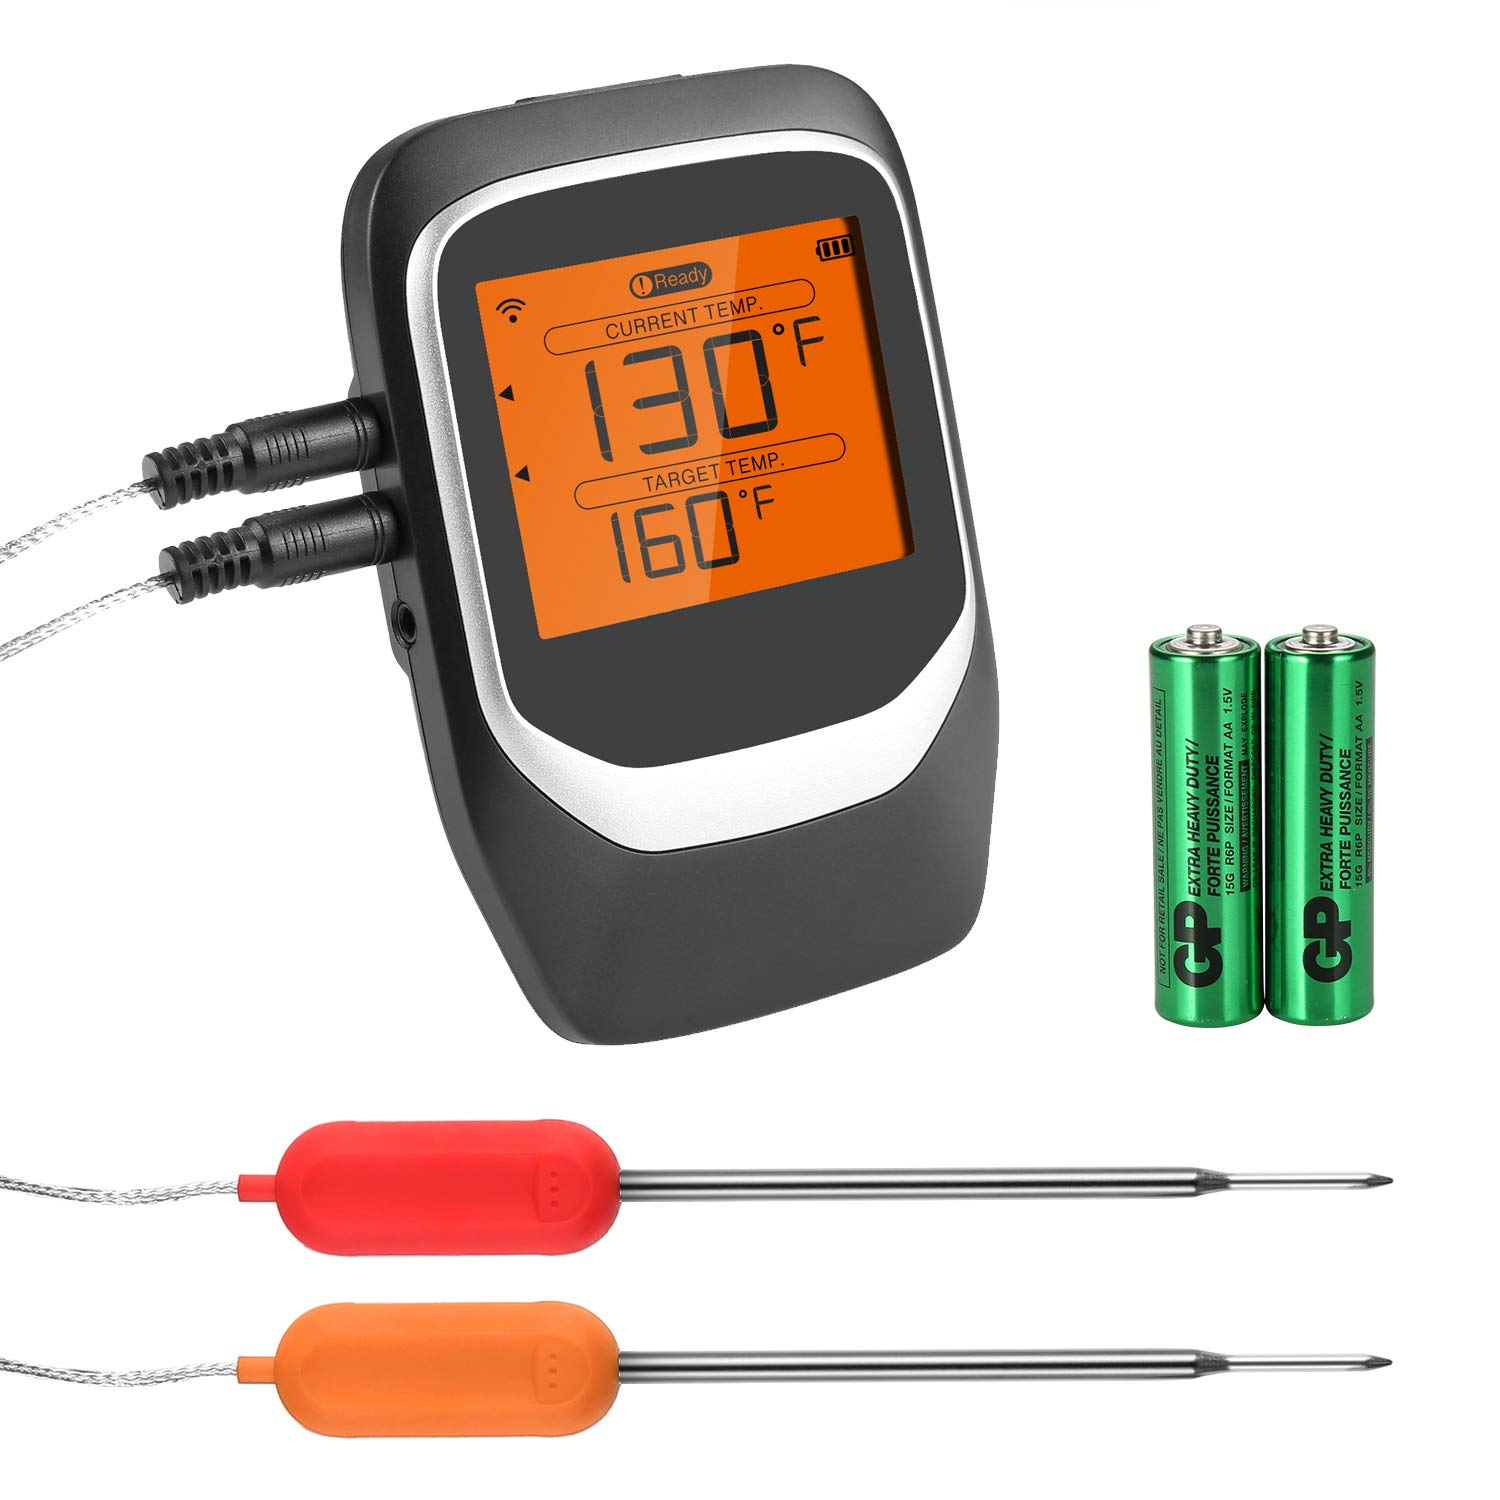 COMLIFE Stainless Steel Probe Replacement for Digital Meat Thermometer FDA Approved 2 Packs